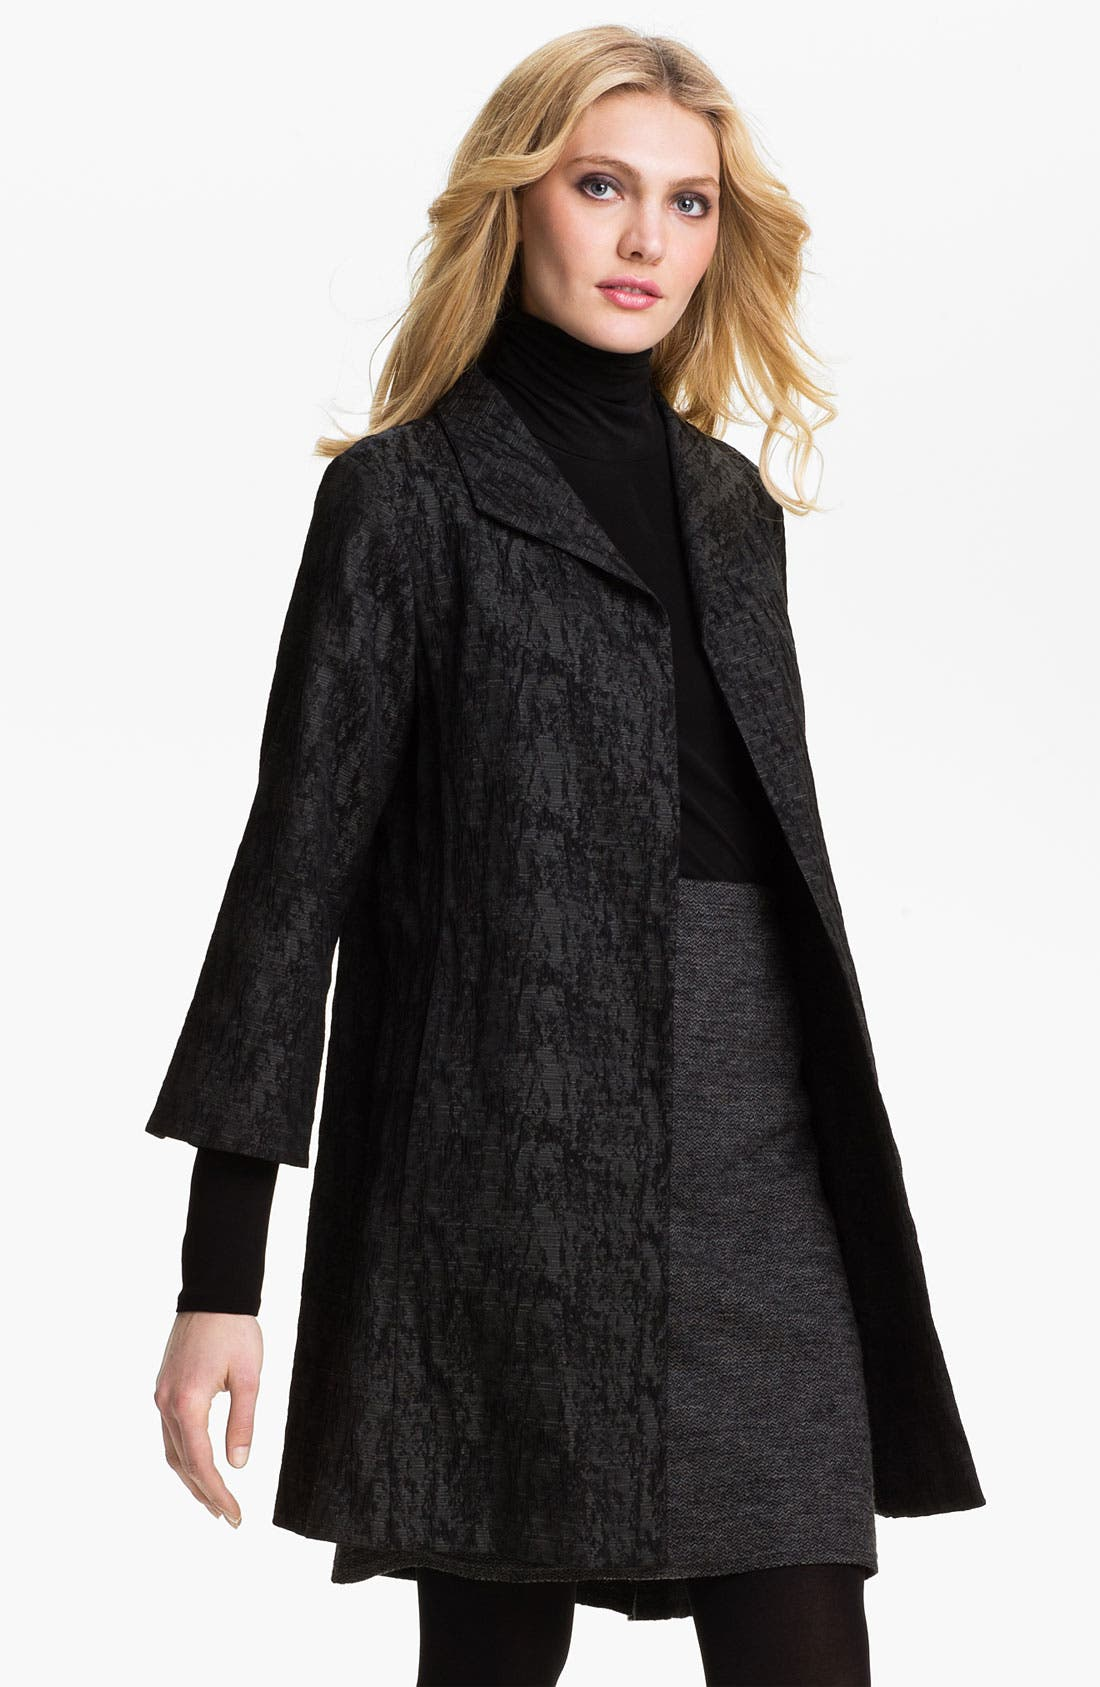 Alternate Image 1 Selected - Eileen Fisher Jacquard Coat (Online Exclusive)